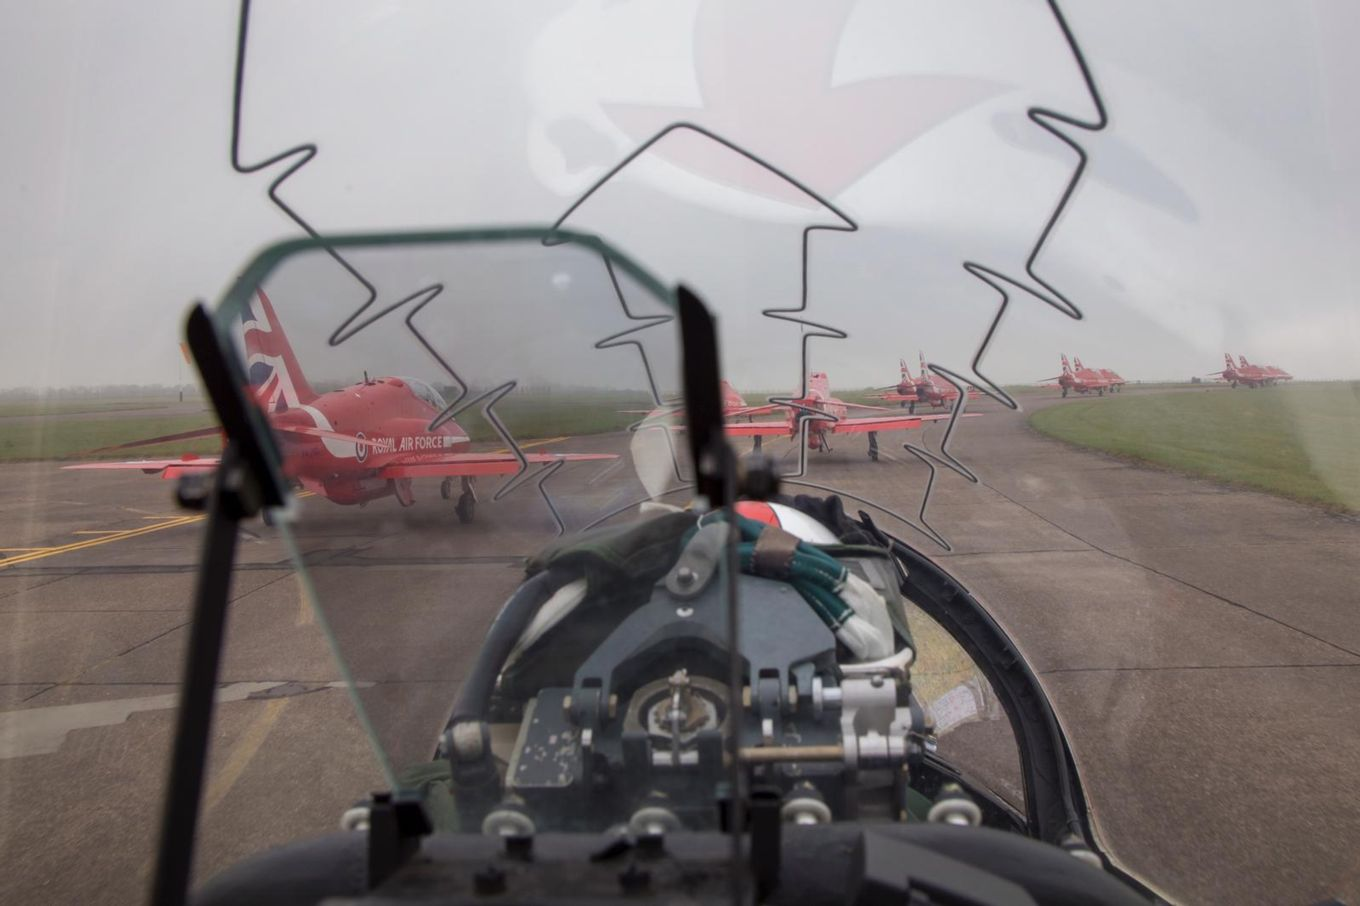 The Red Arrows departed RAF Scampton for pre-season training.